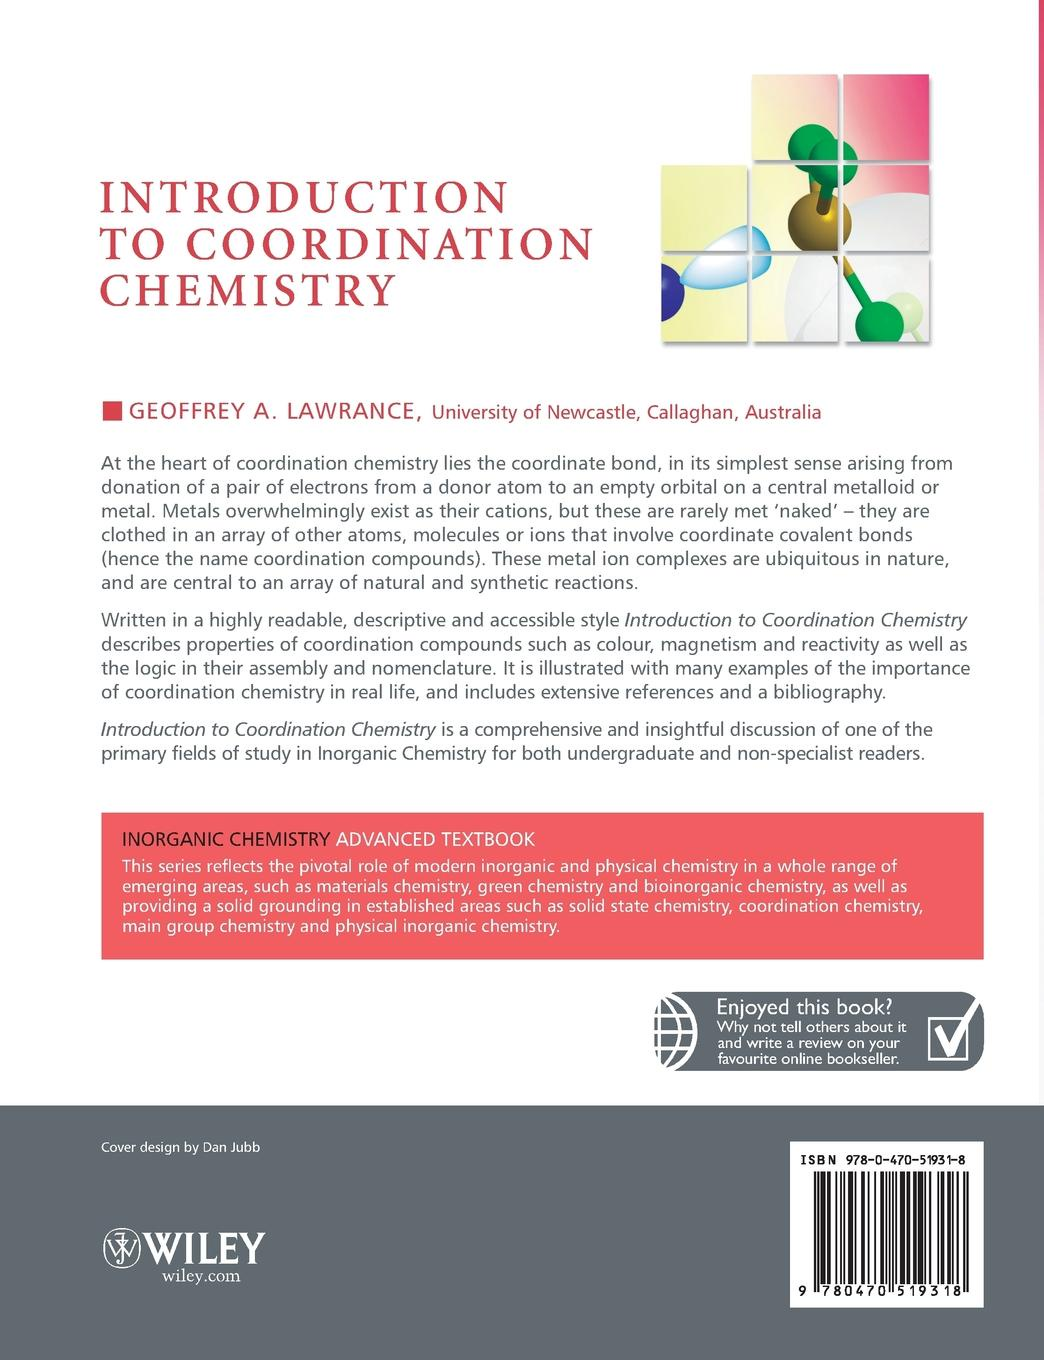 Lawrance Introduction to Coordination Chemistry